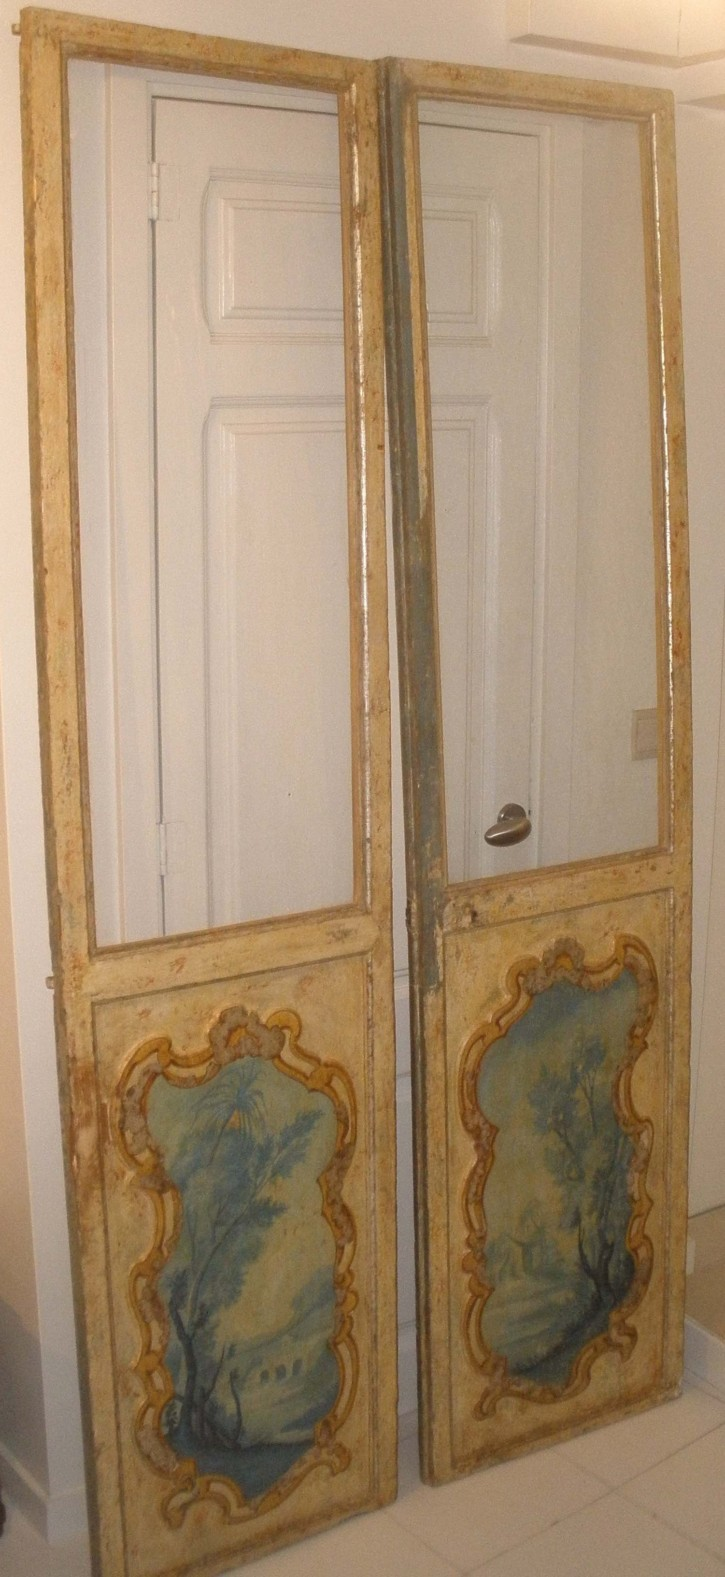 Pair of polychromed 18th century doors